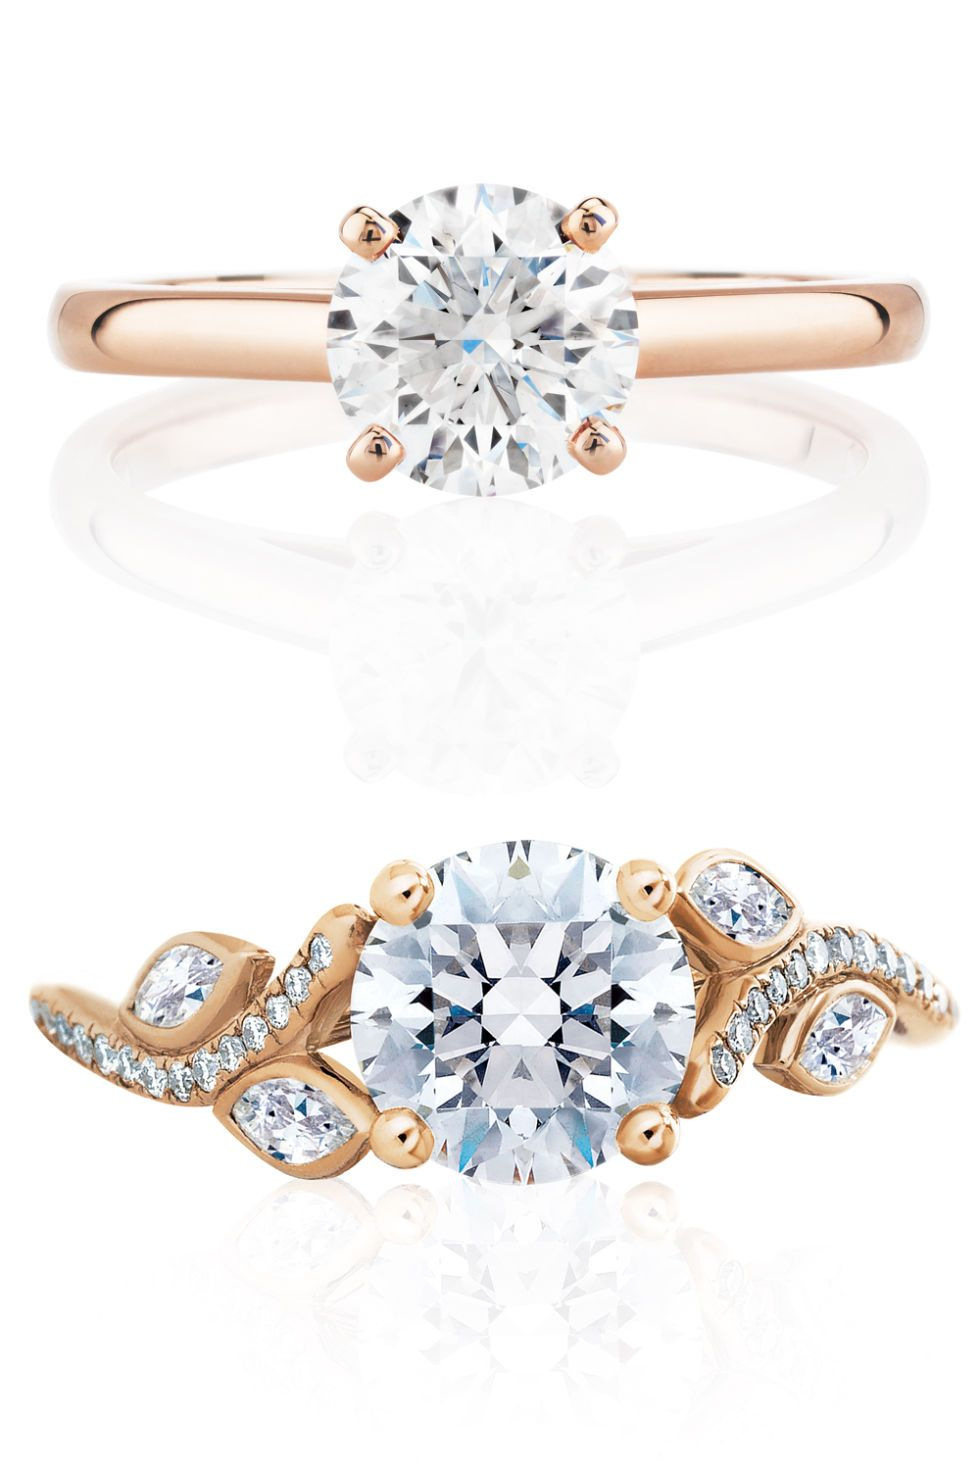 rose gold engagement rings to shop this engagement season rose